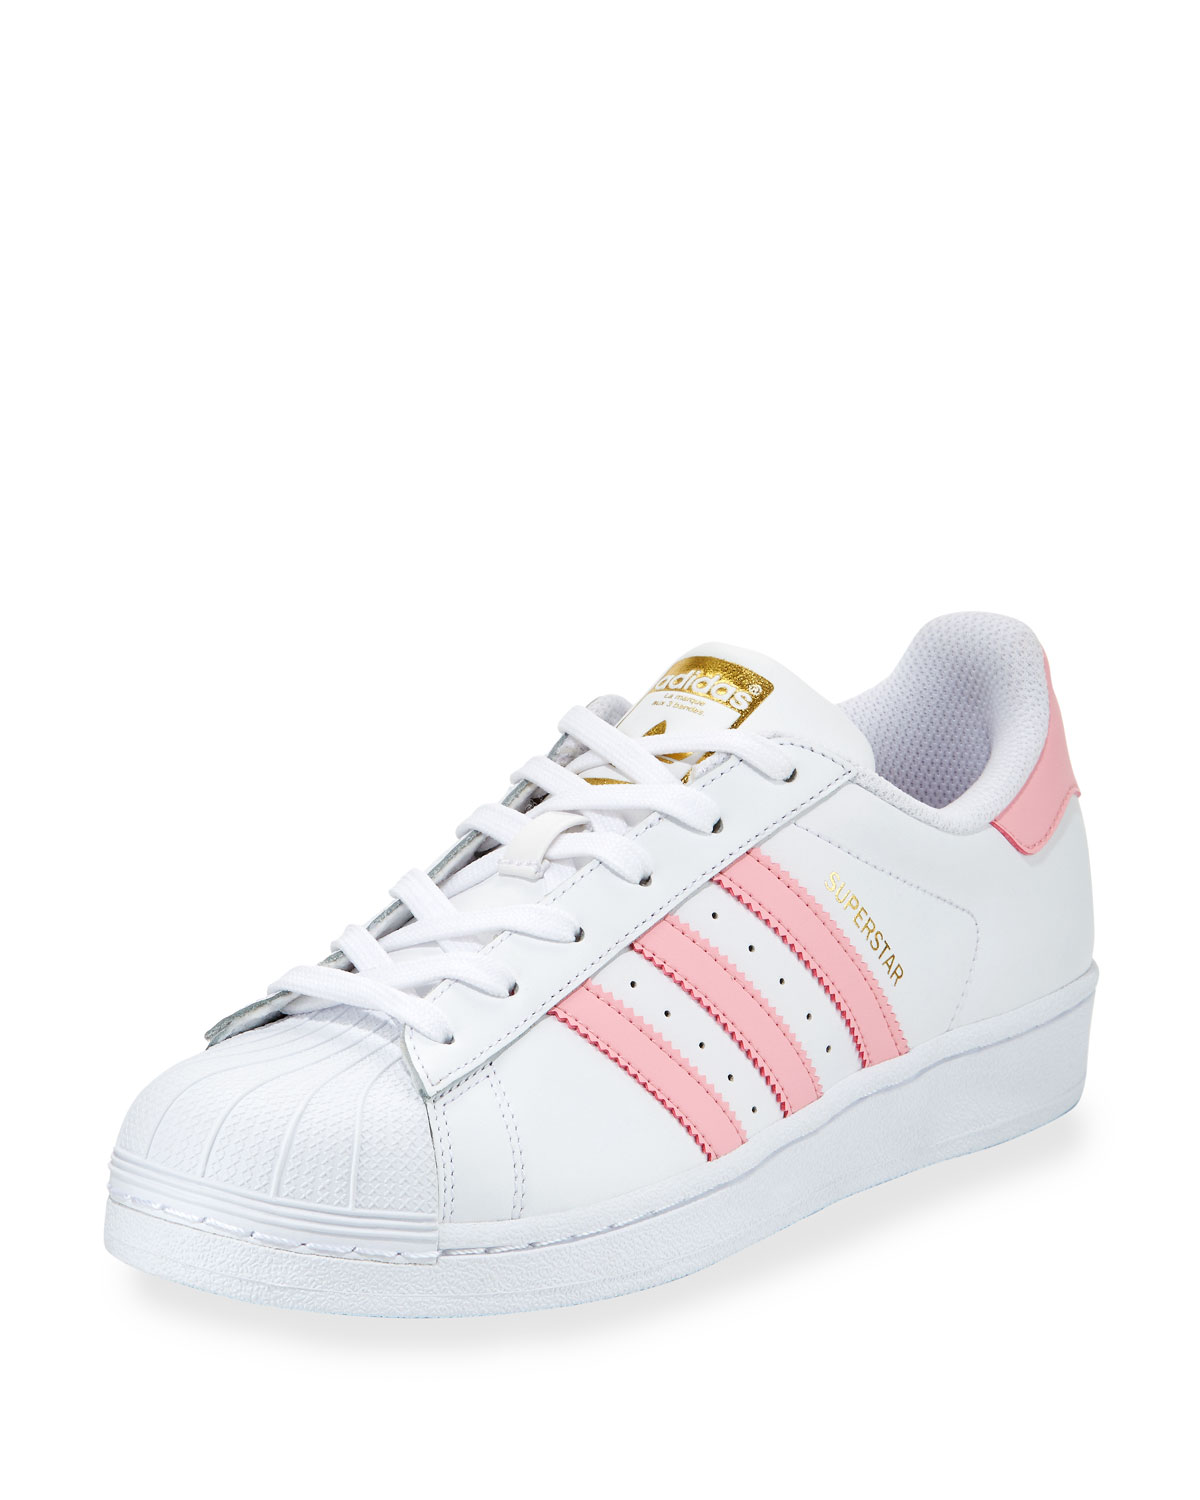 Adidas Superstar 80s (Black, White & Gold Metallic) End